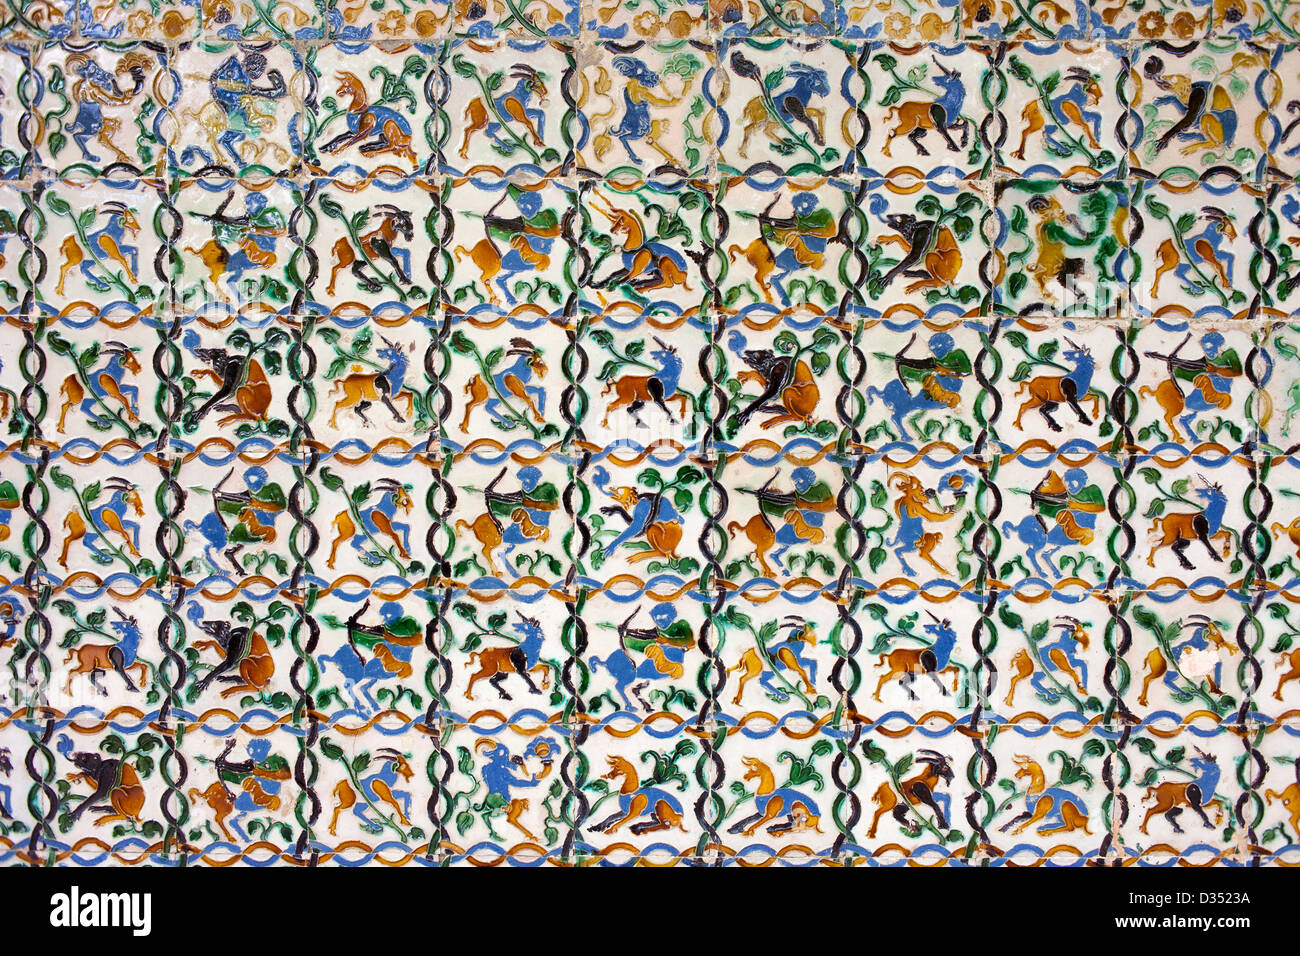 Historic tiled wall with many mythical creatures: satyrs, centaurs, unicorns in Real Alcazar, Seville, Spain, Andalusia - Stock Image